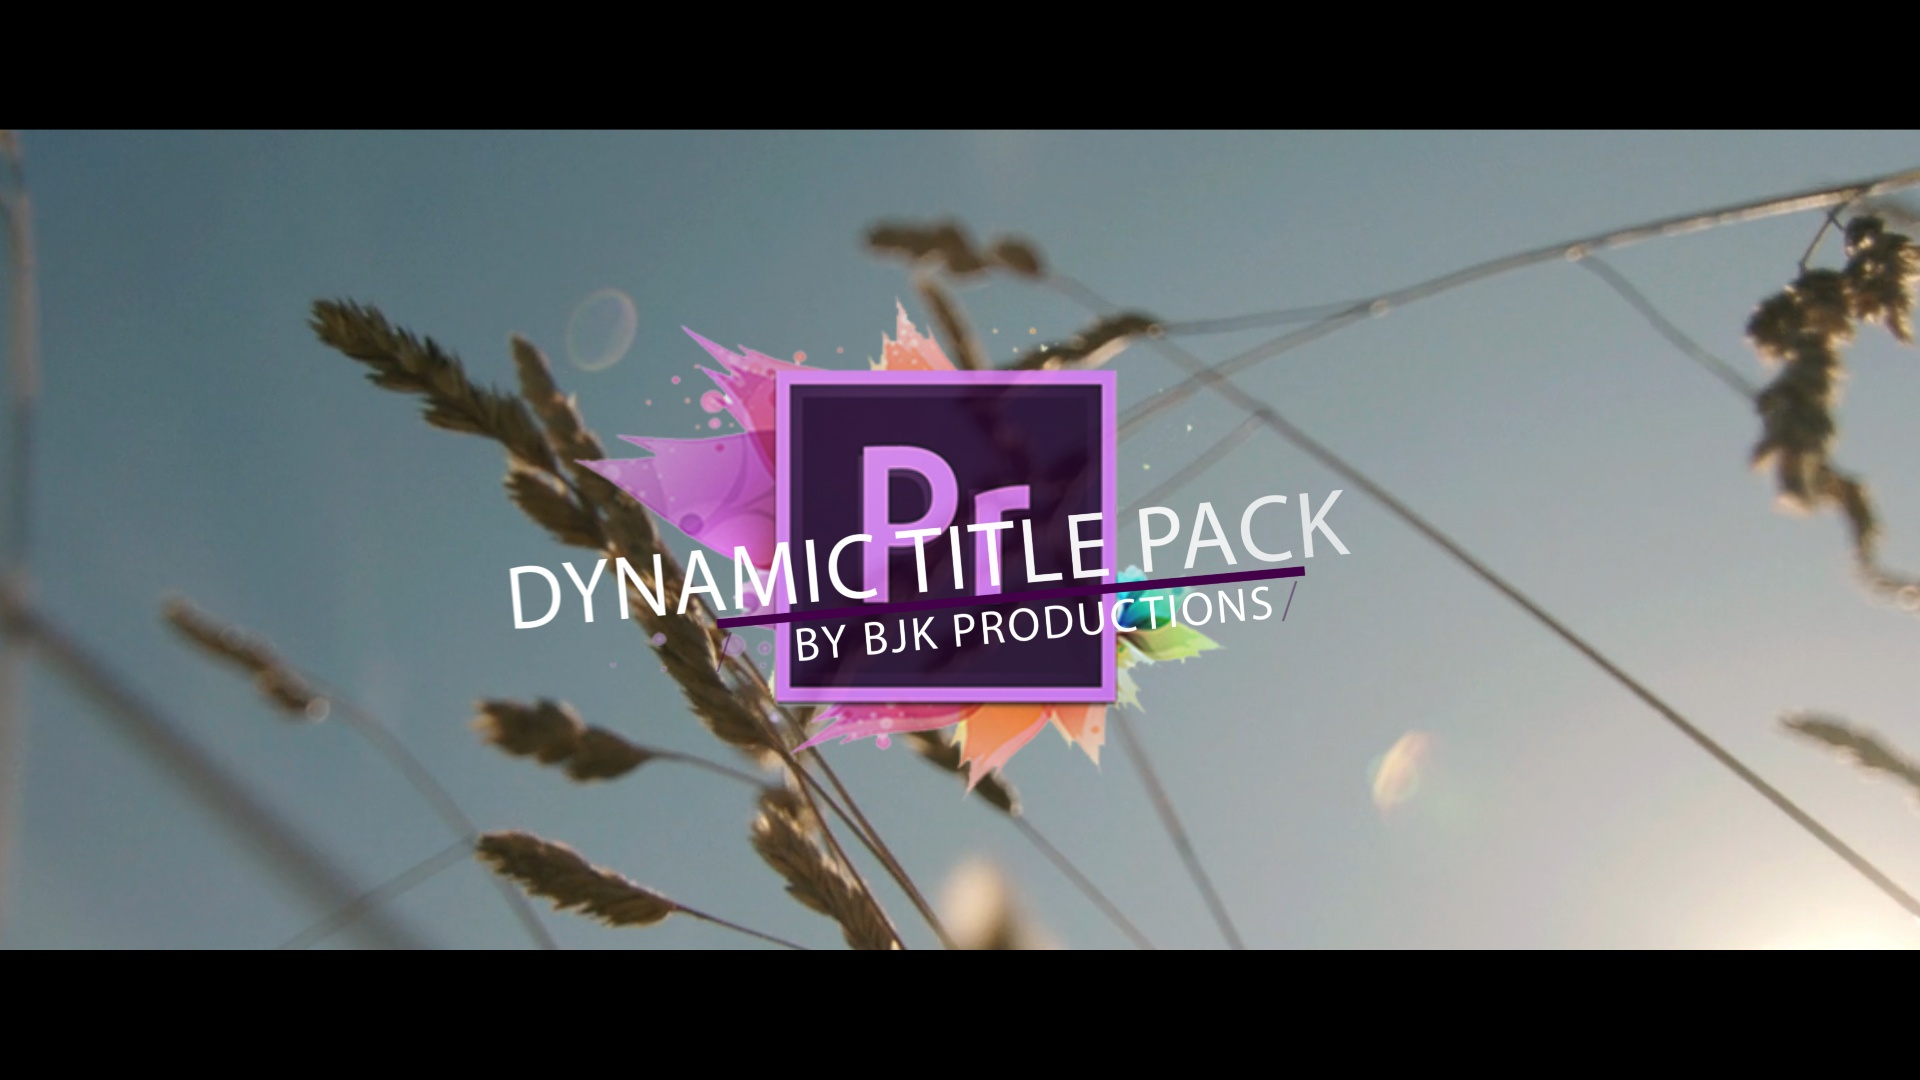 Adobe Premiere Pro CC Dynamic Title Pack